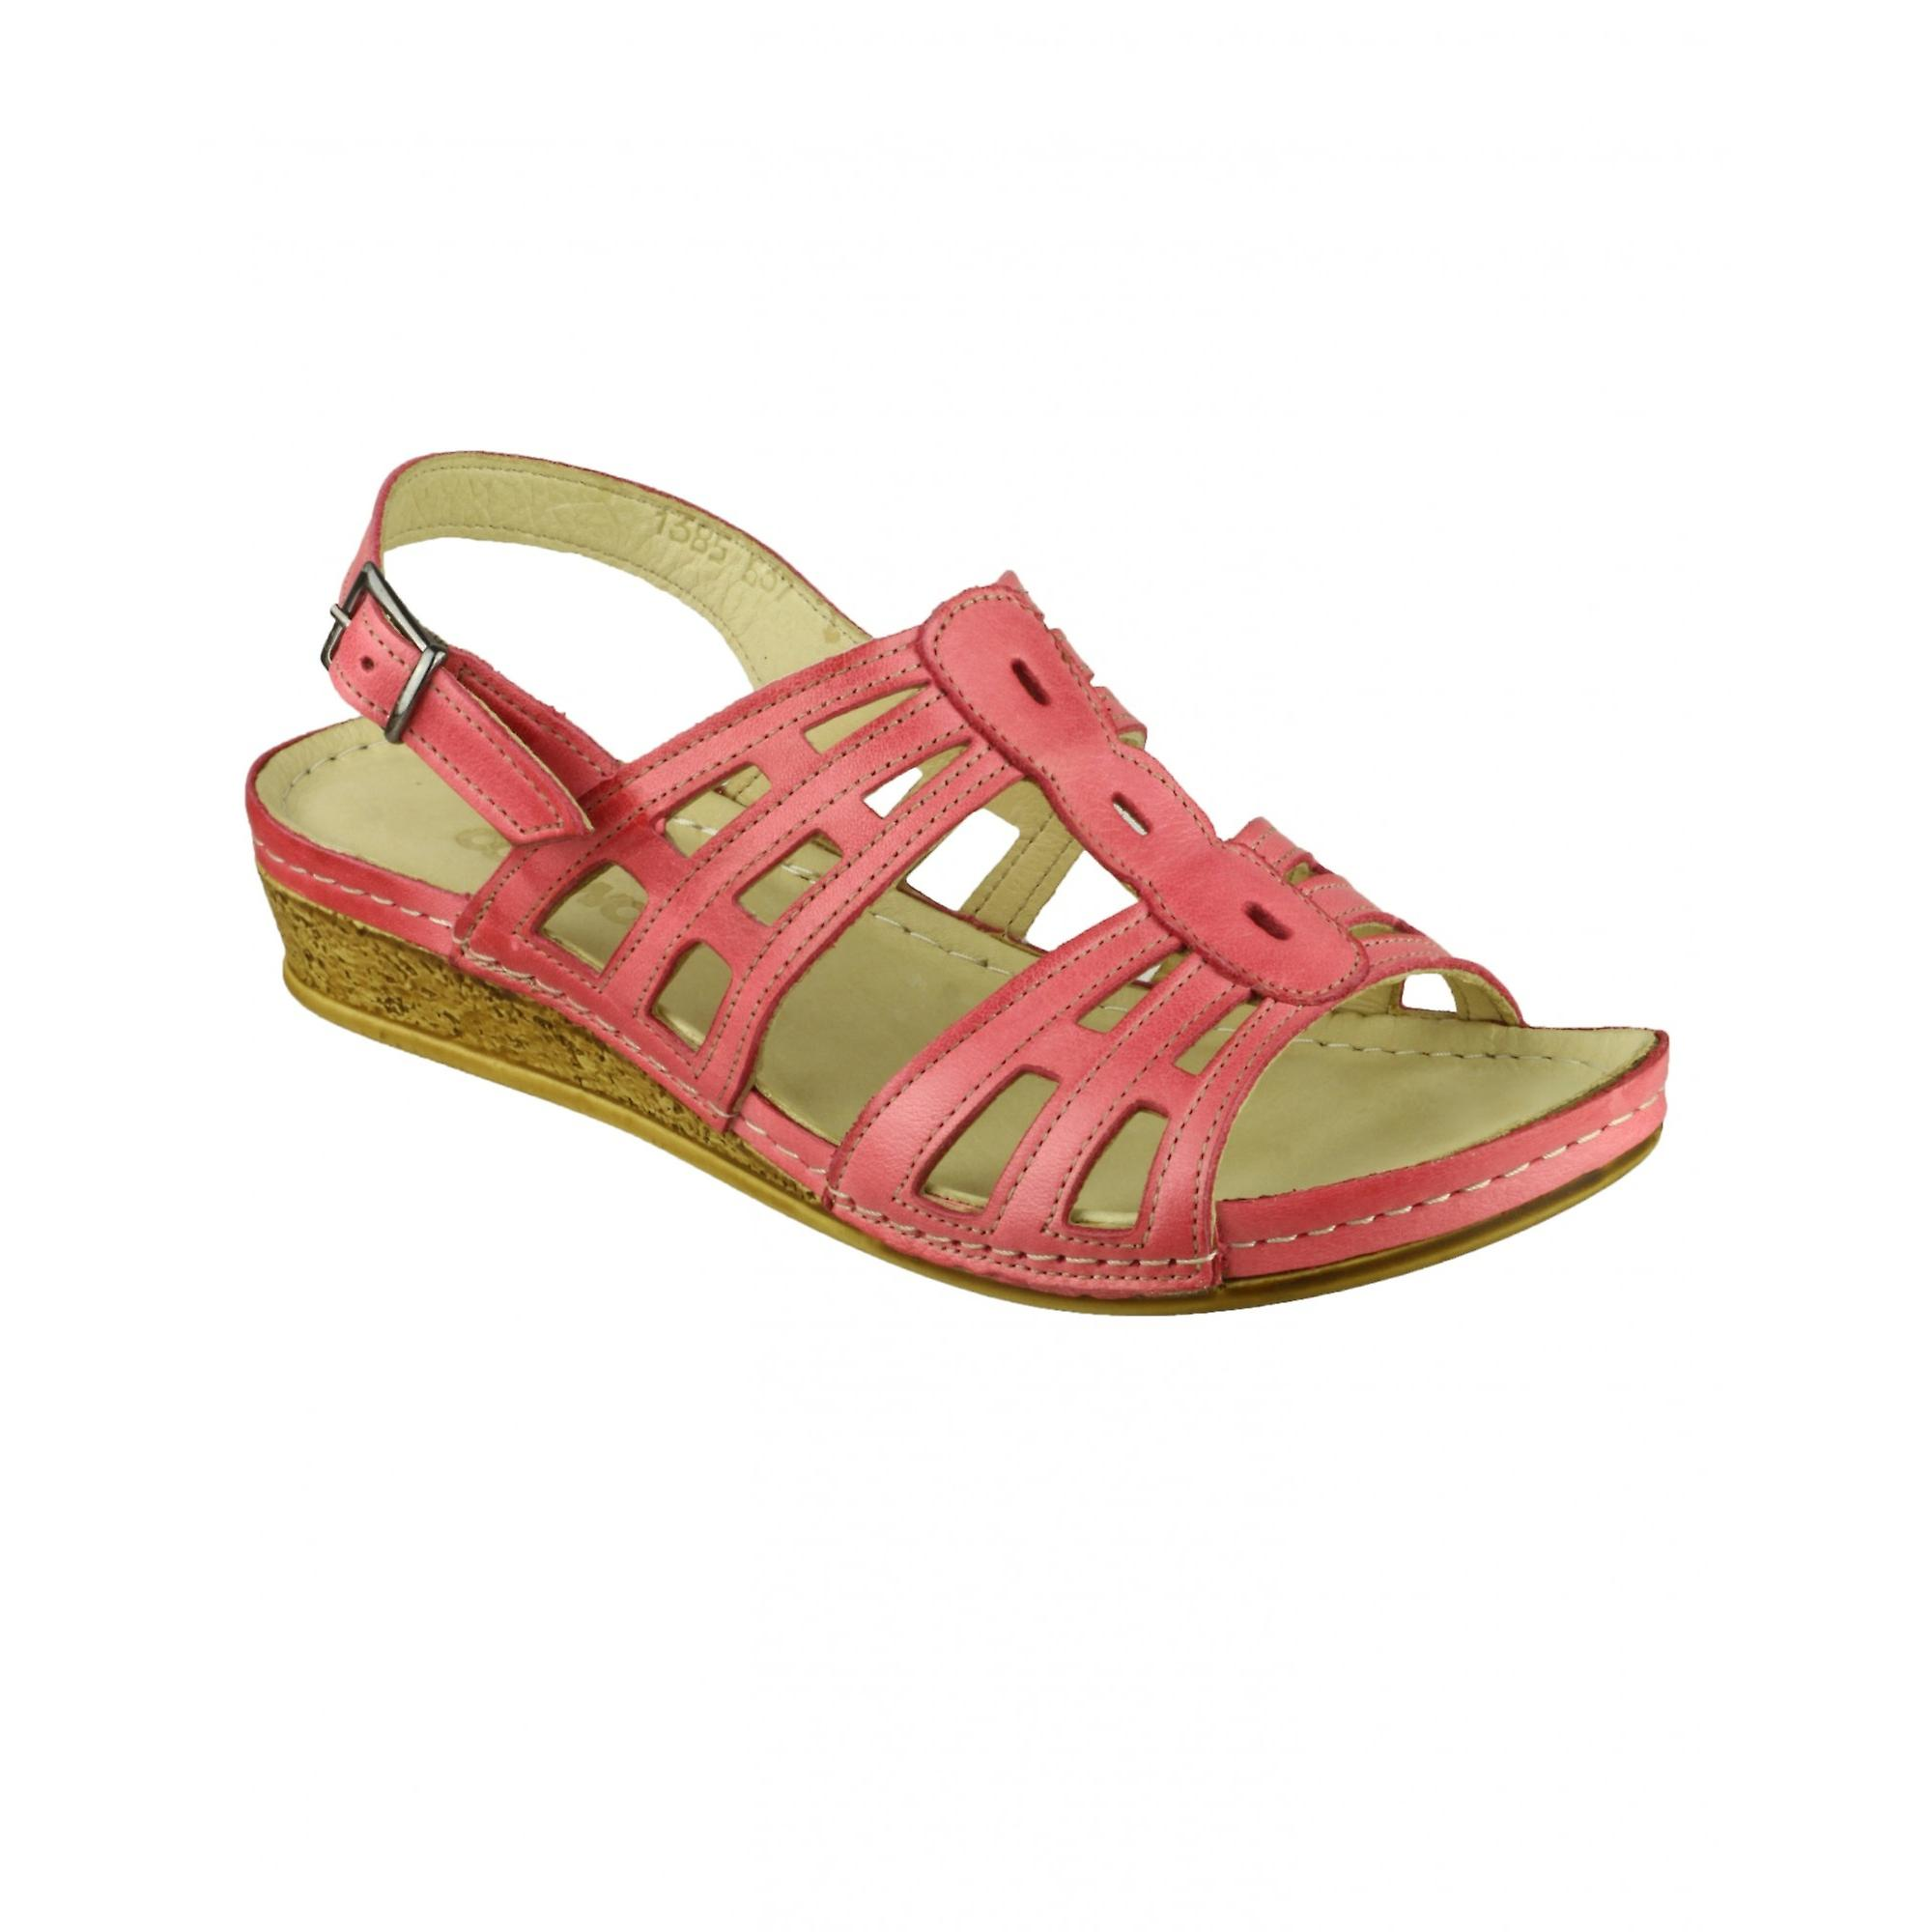 Cotswold Guiting Ladies Summer chaussures